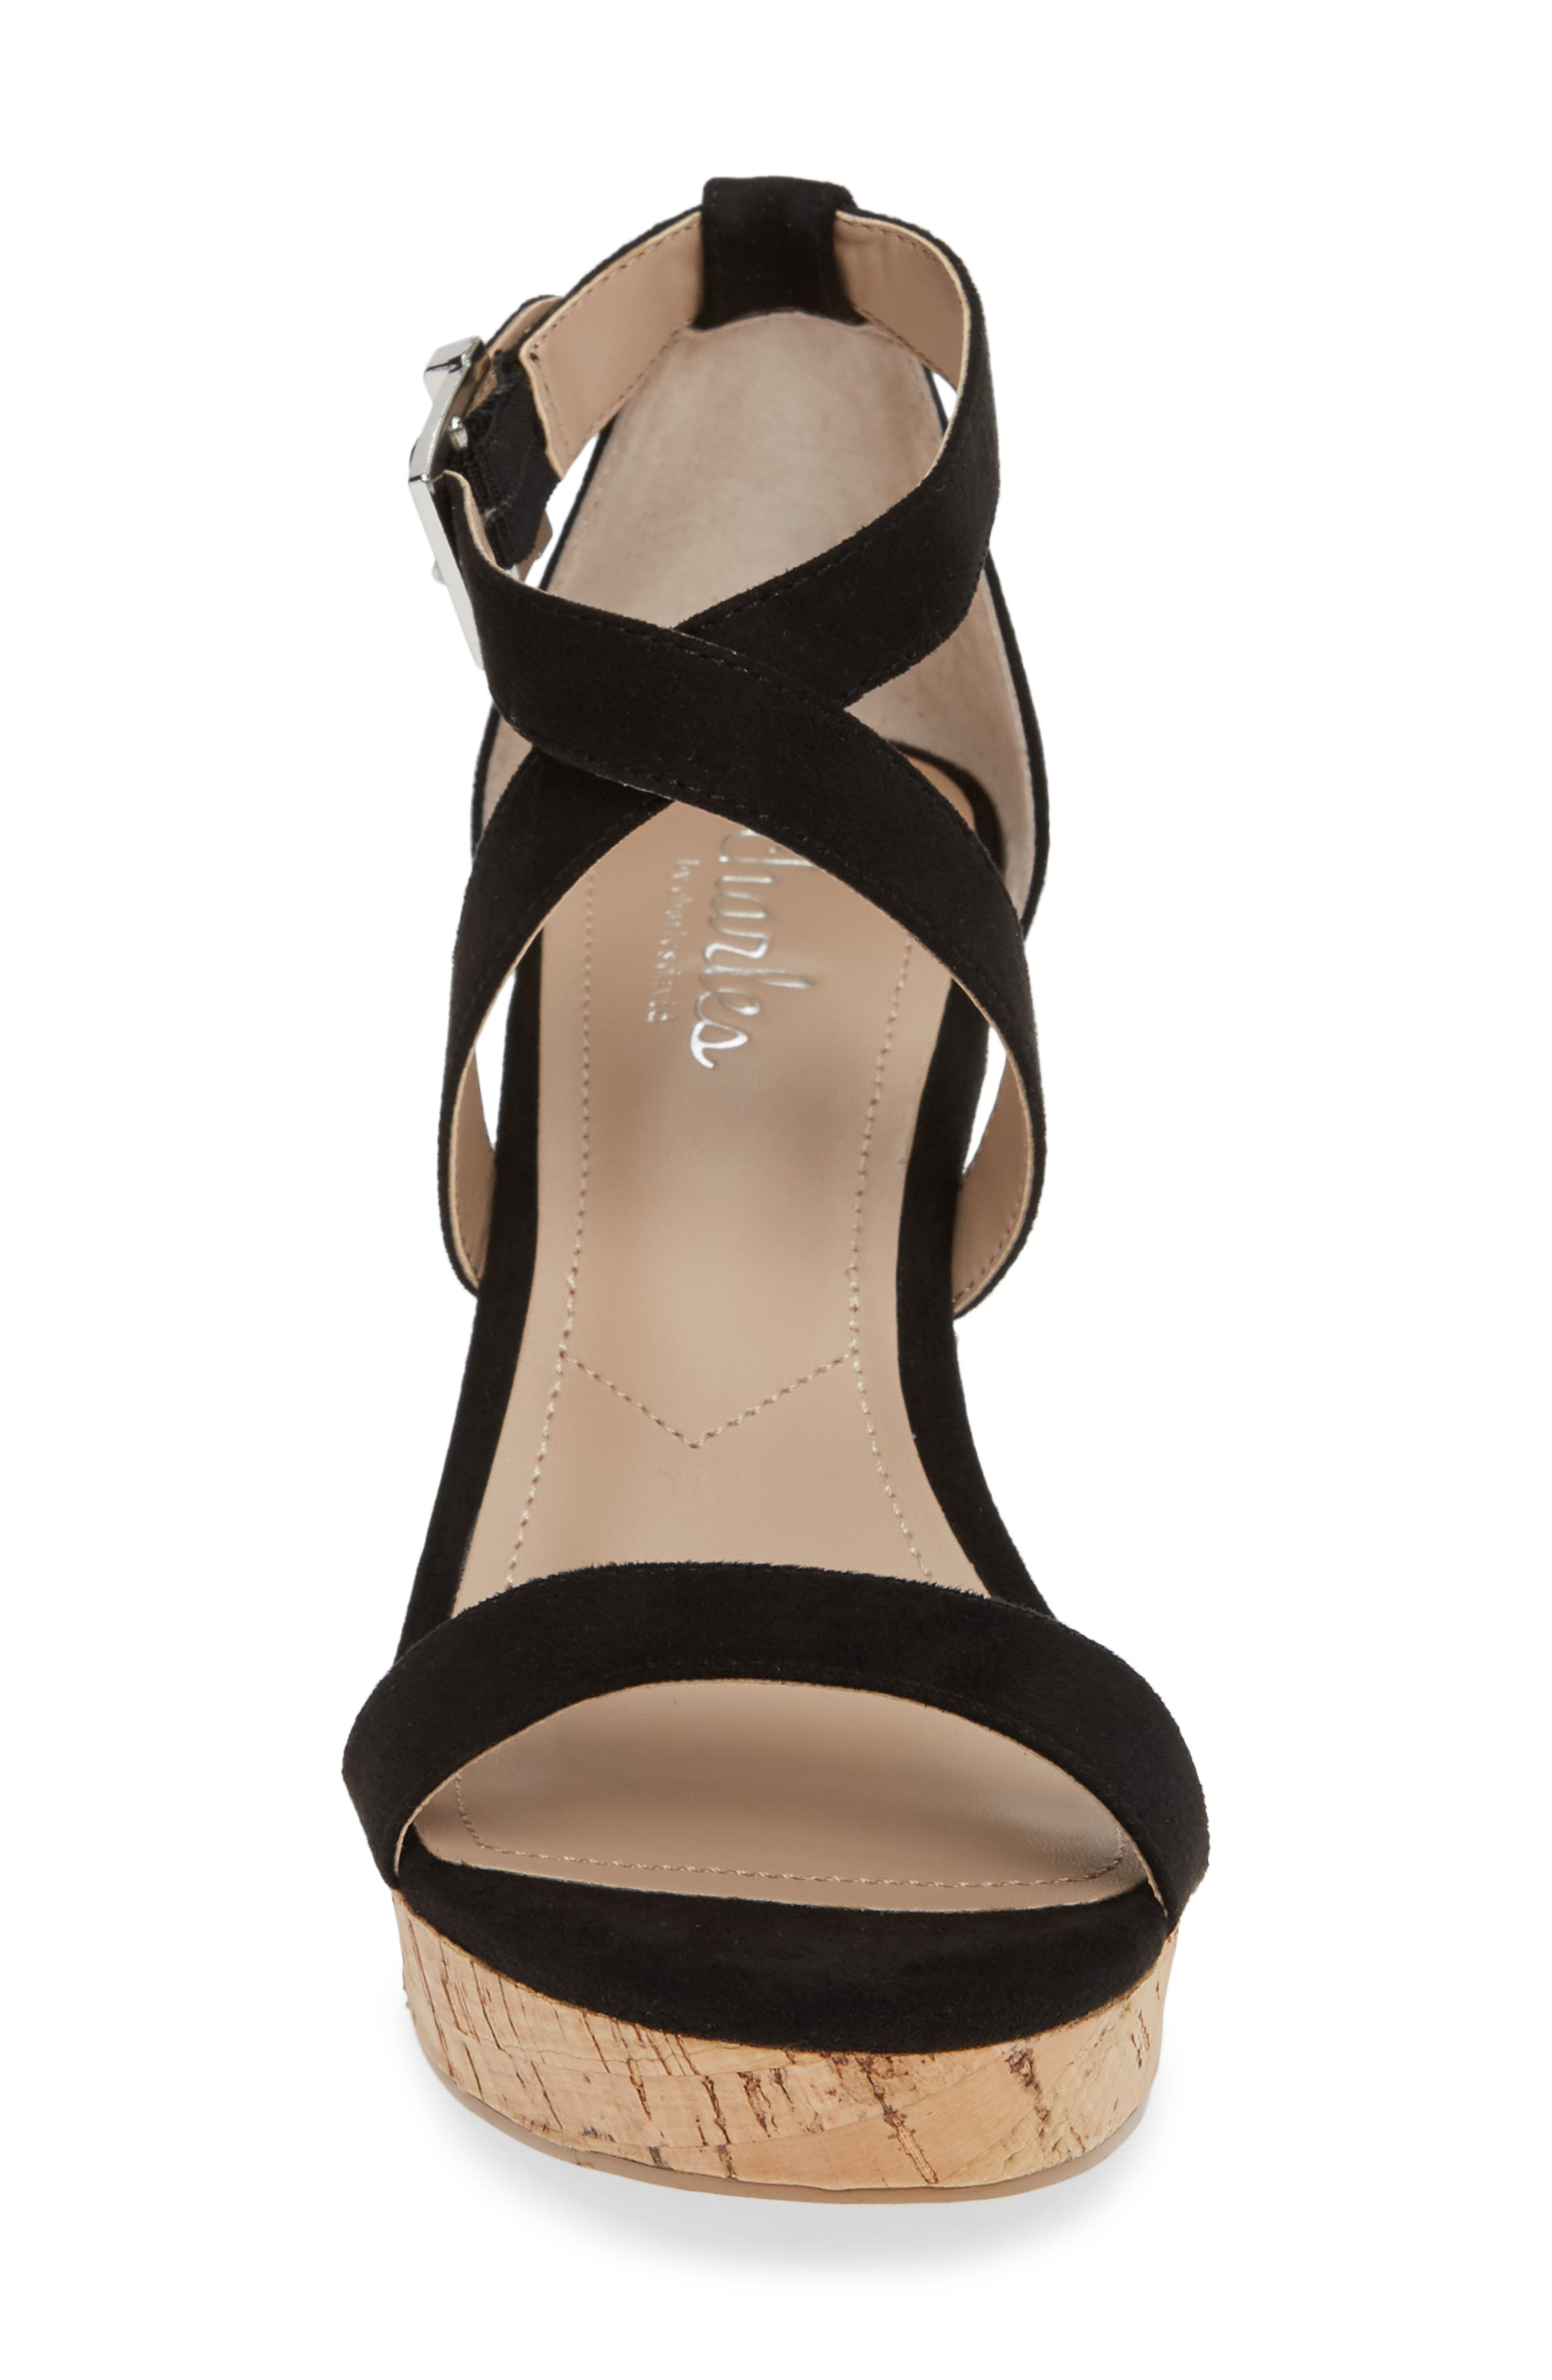 CHARLES BY CHARLES DAVID, Launch Wedge Sandal, Alternate thumbnail 4, color, BLACK FABRIC